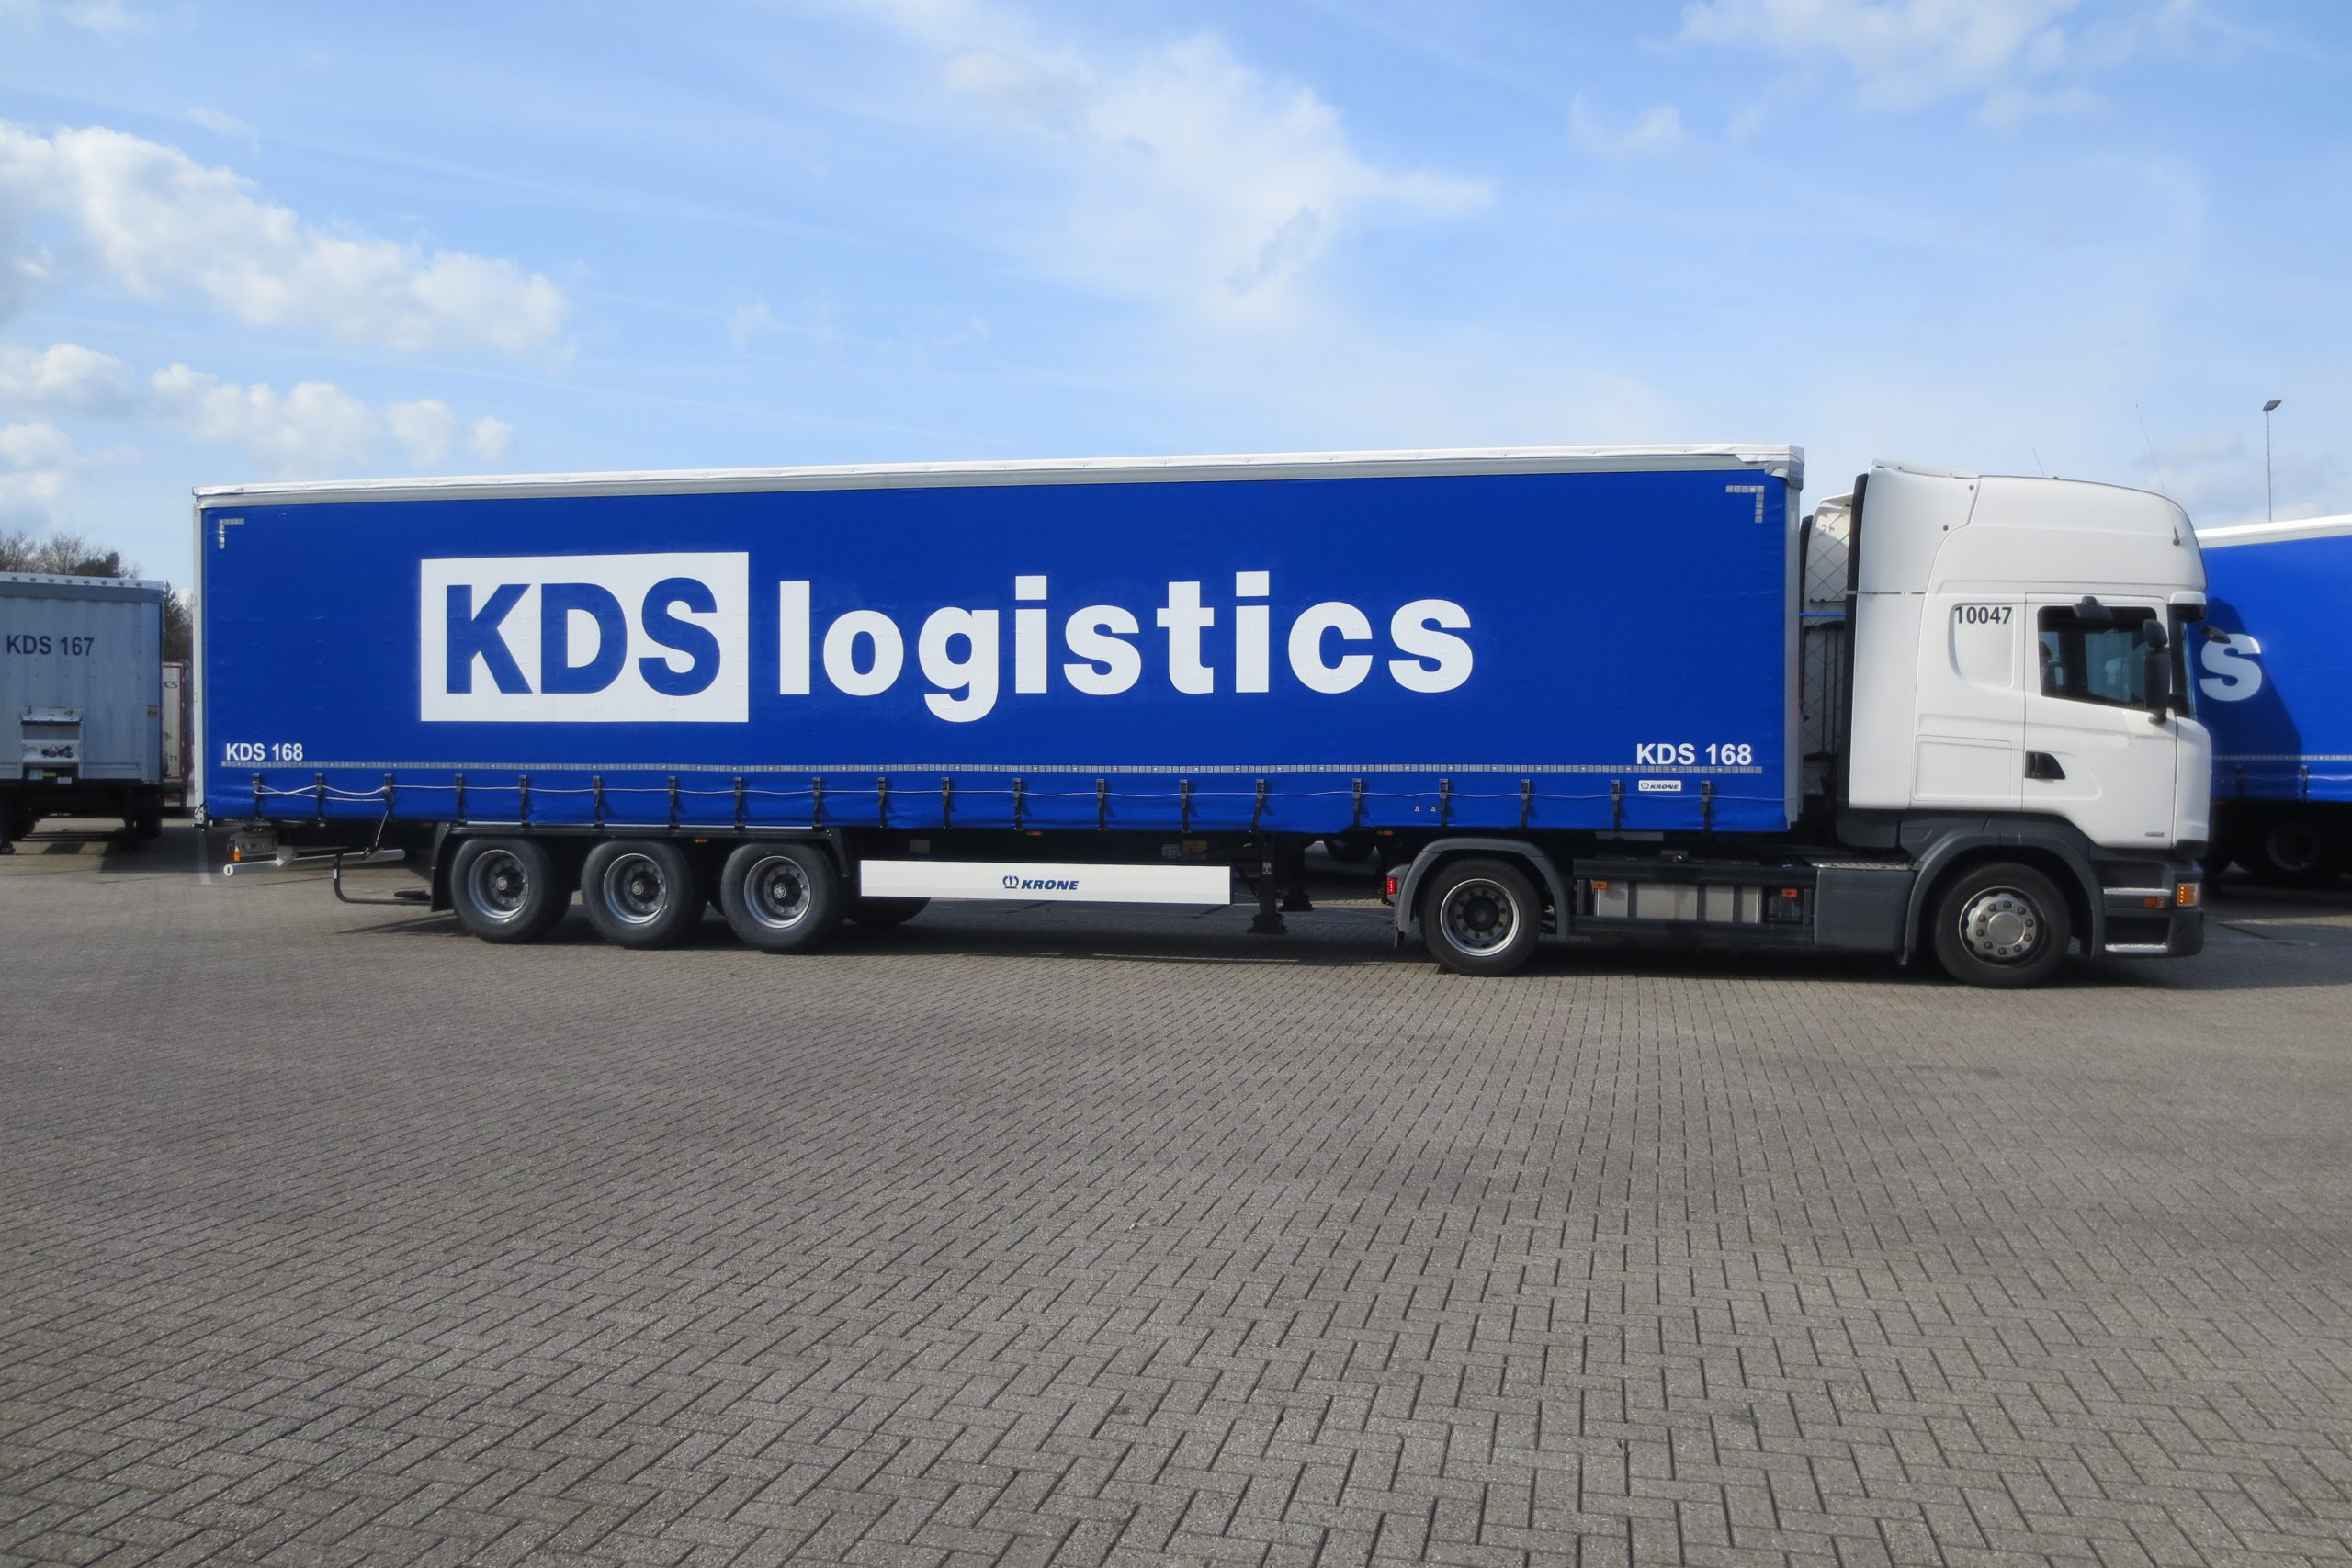 https://www.kdslogistics.nl/wp-content/uploads/2020/08/materieel-5-scaled.jpg